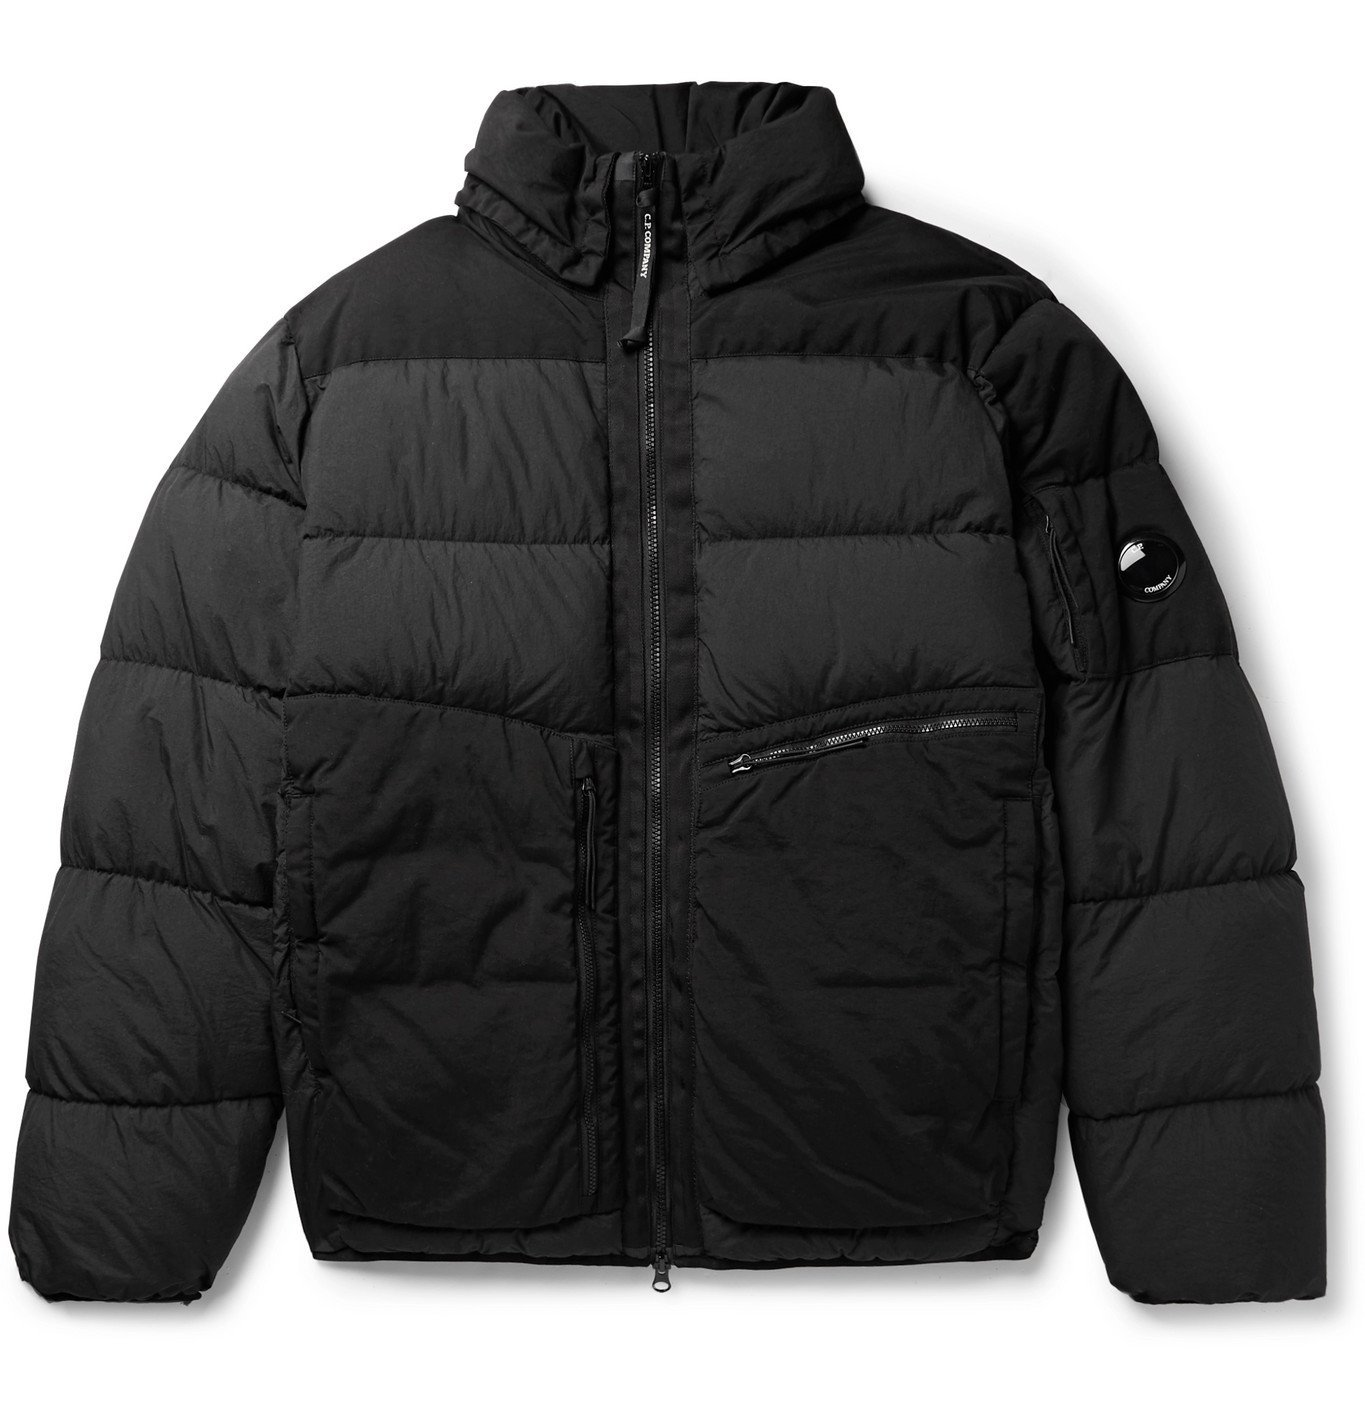 C.P. Company - Appliquéd Garment-Dyed Padded Quilted Nylon Jacket - Black